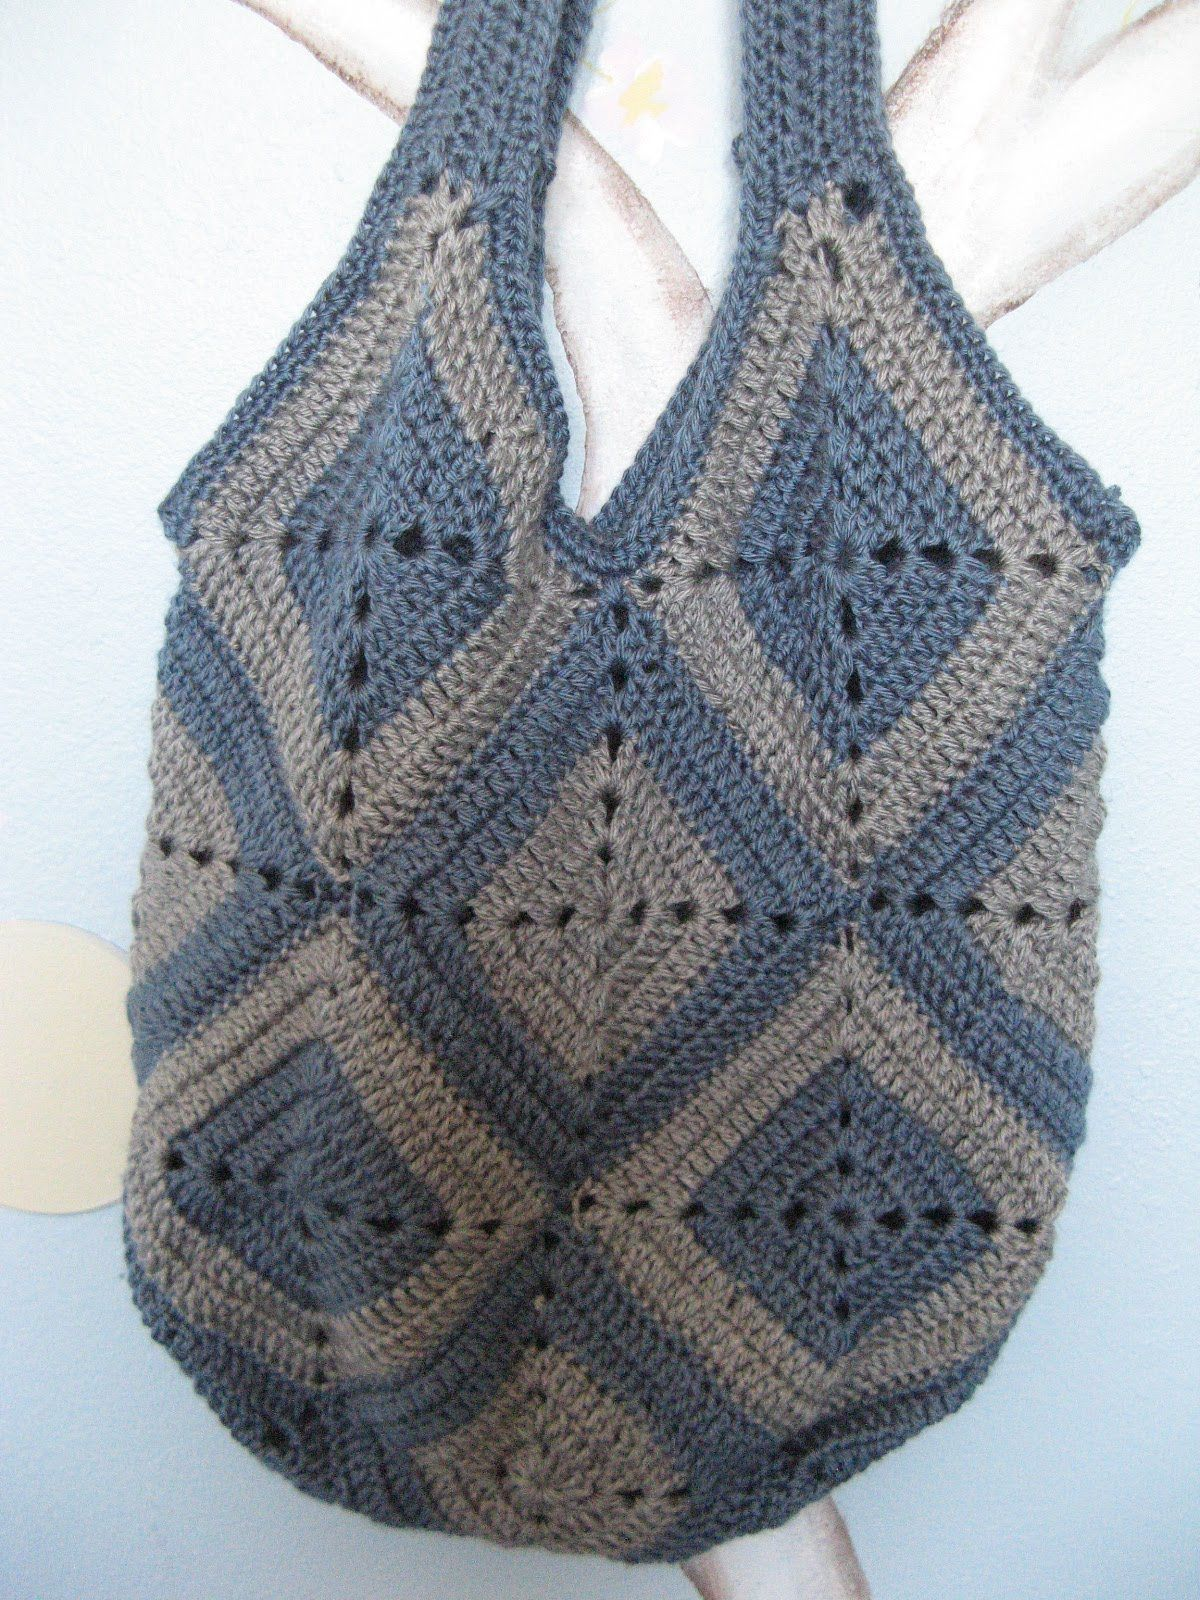 This Is A Video Tutorial For Ingas Crochet Bag When I First Saw